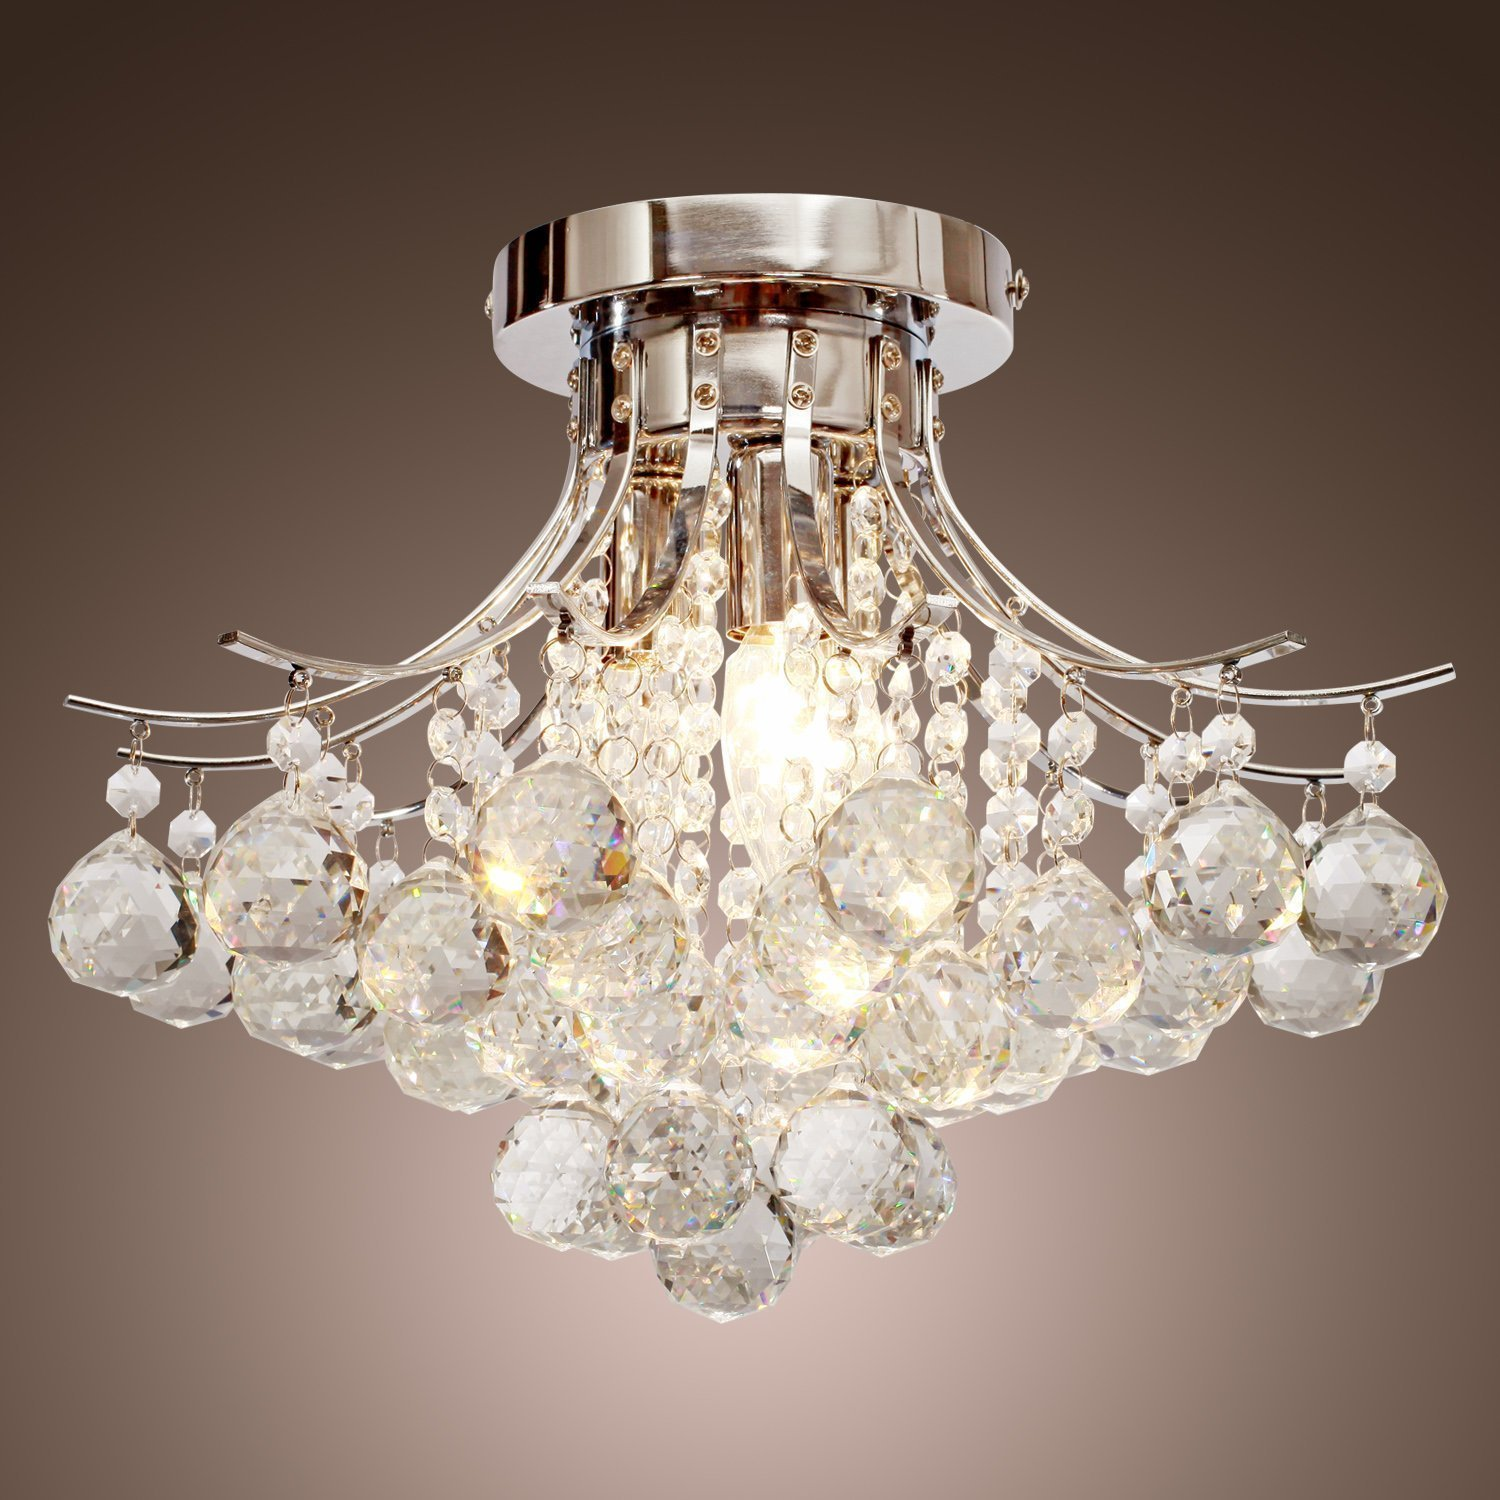 LOCO Chrome Finish Crystal Chandelier with 3